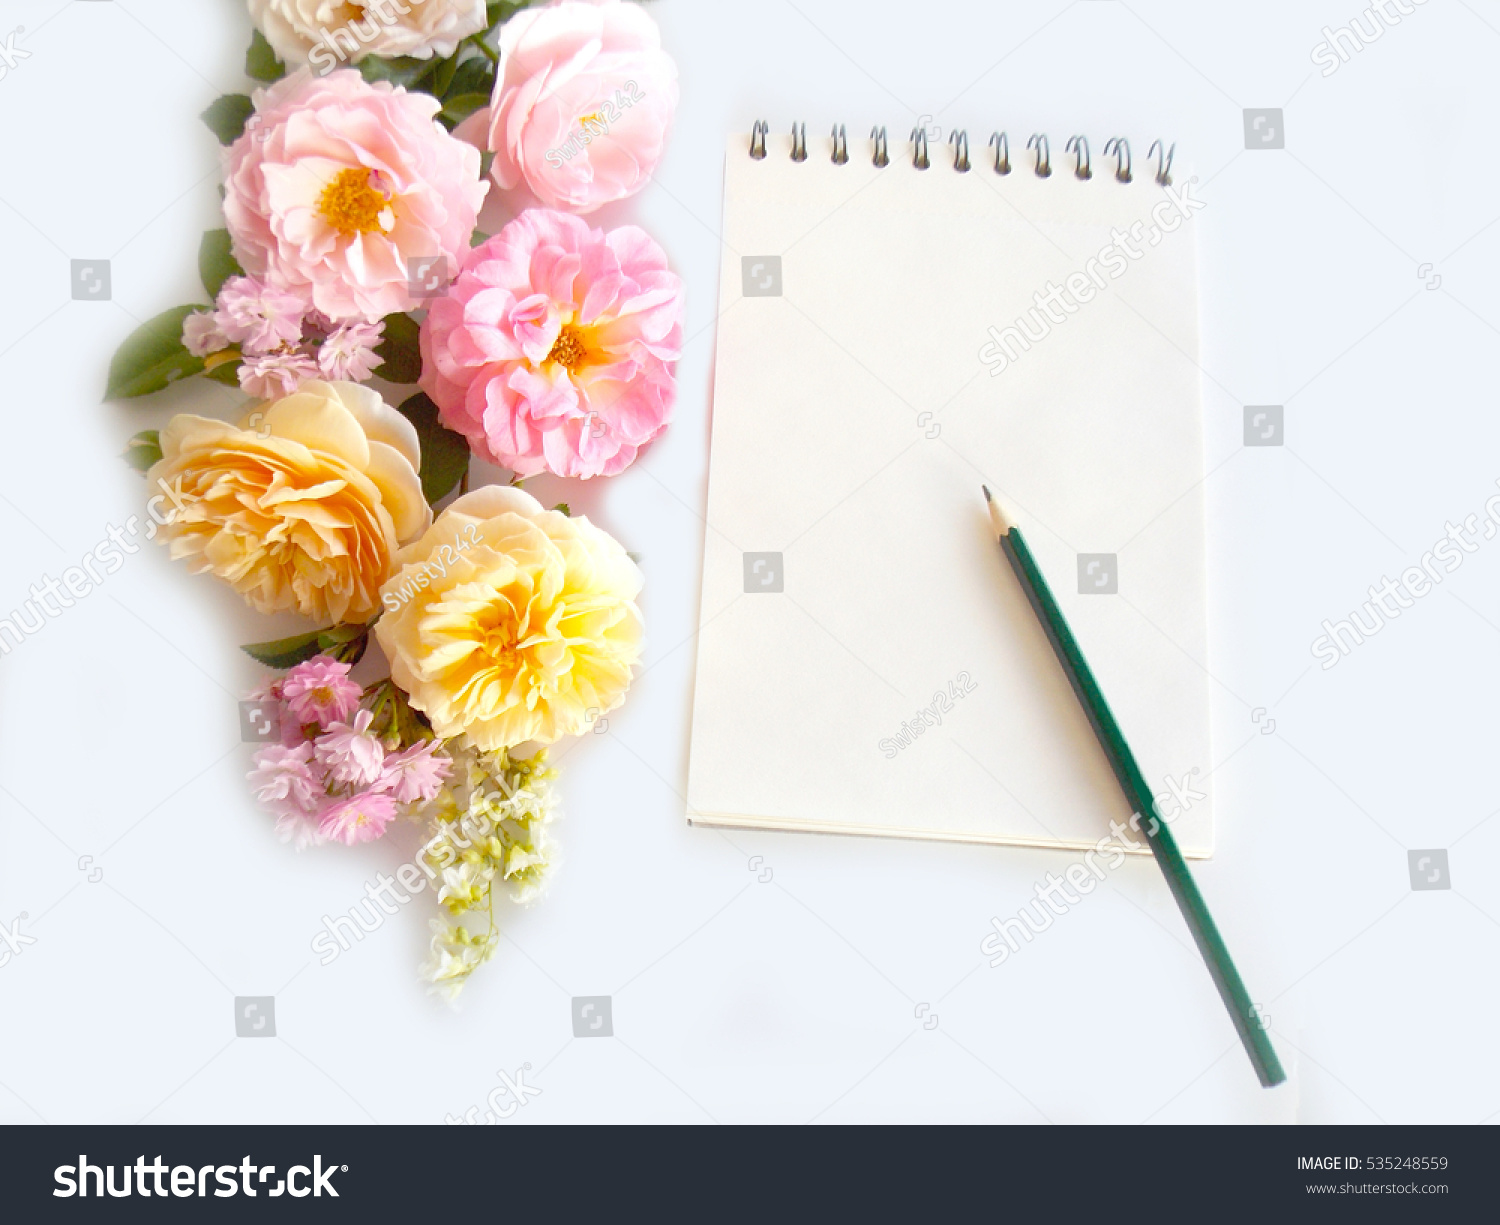 Beautiful english rose bouquet flower notepad stock photo edit now beautiful english rose bouquet flower with notepad izmirmasajfo